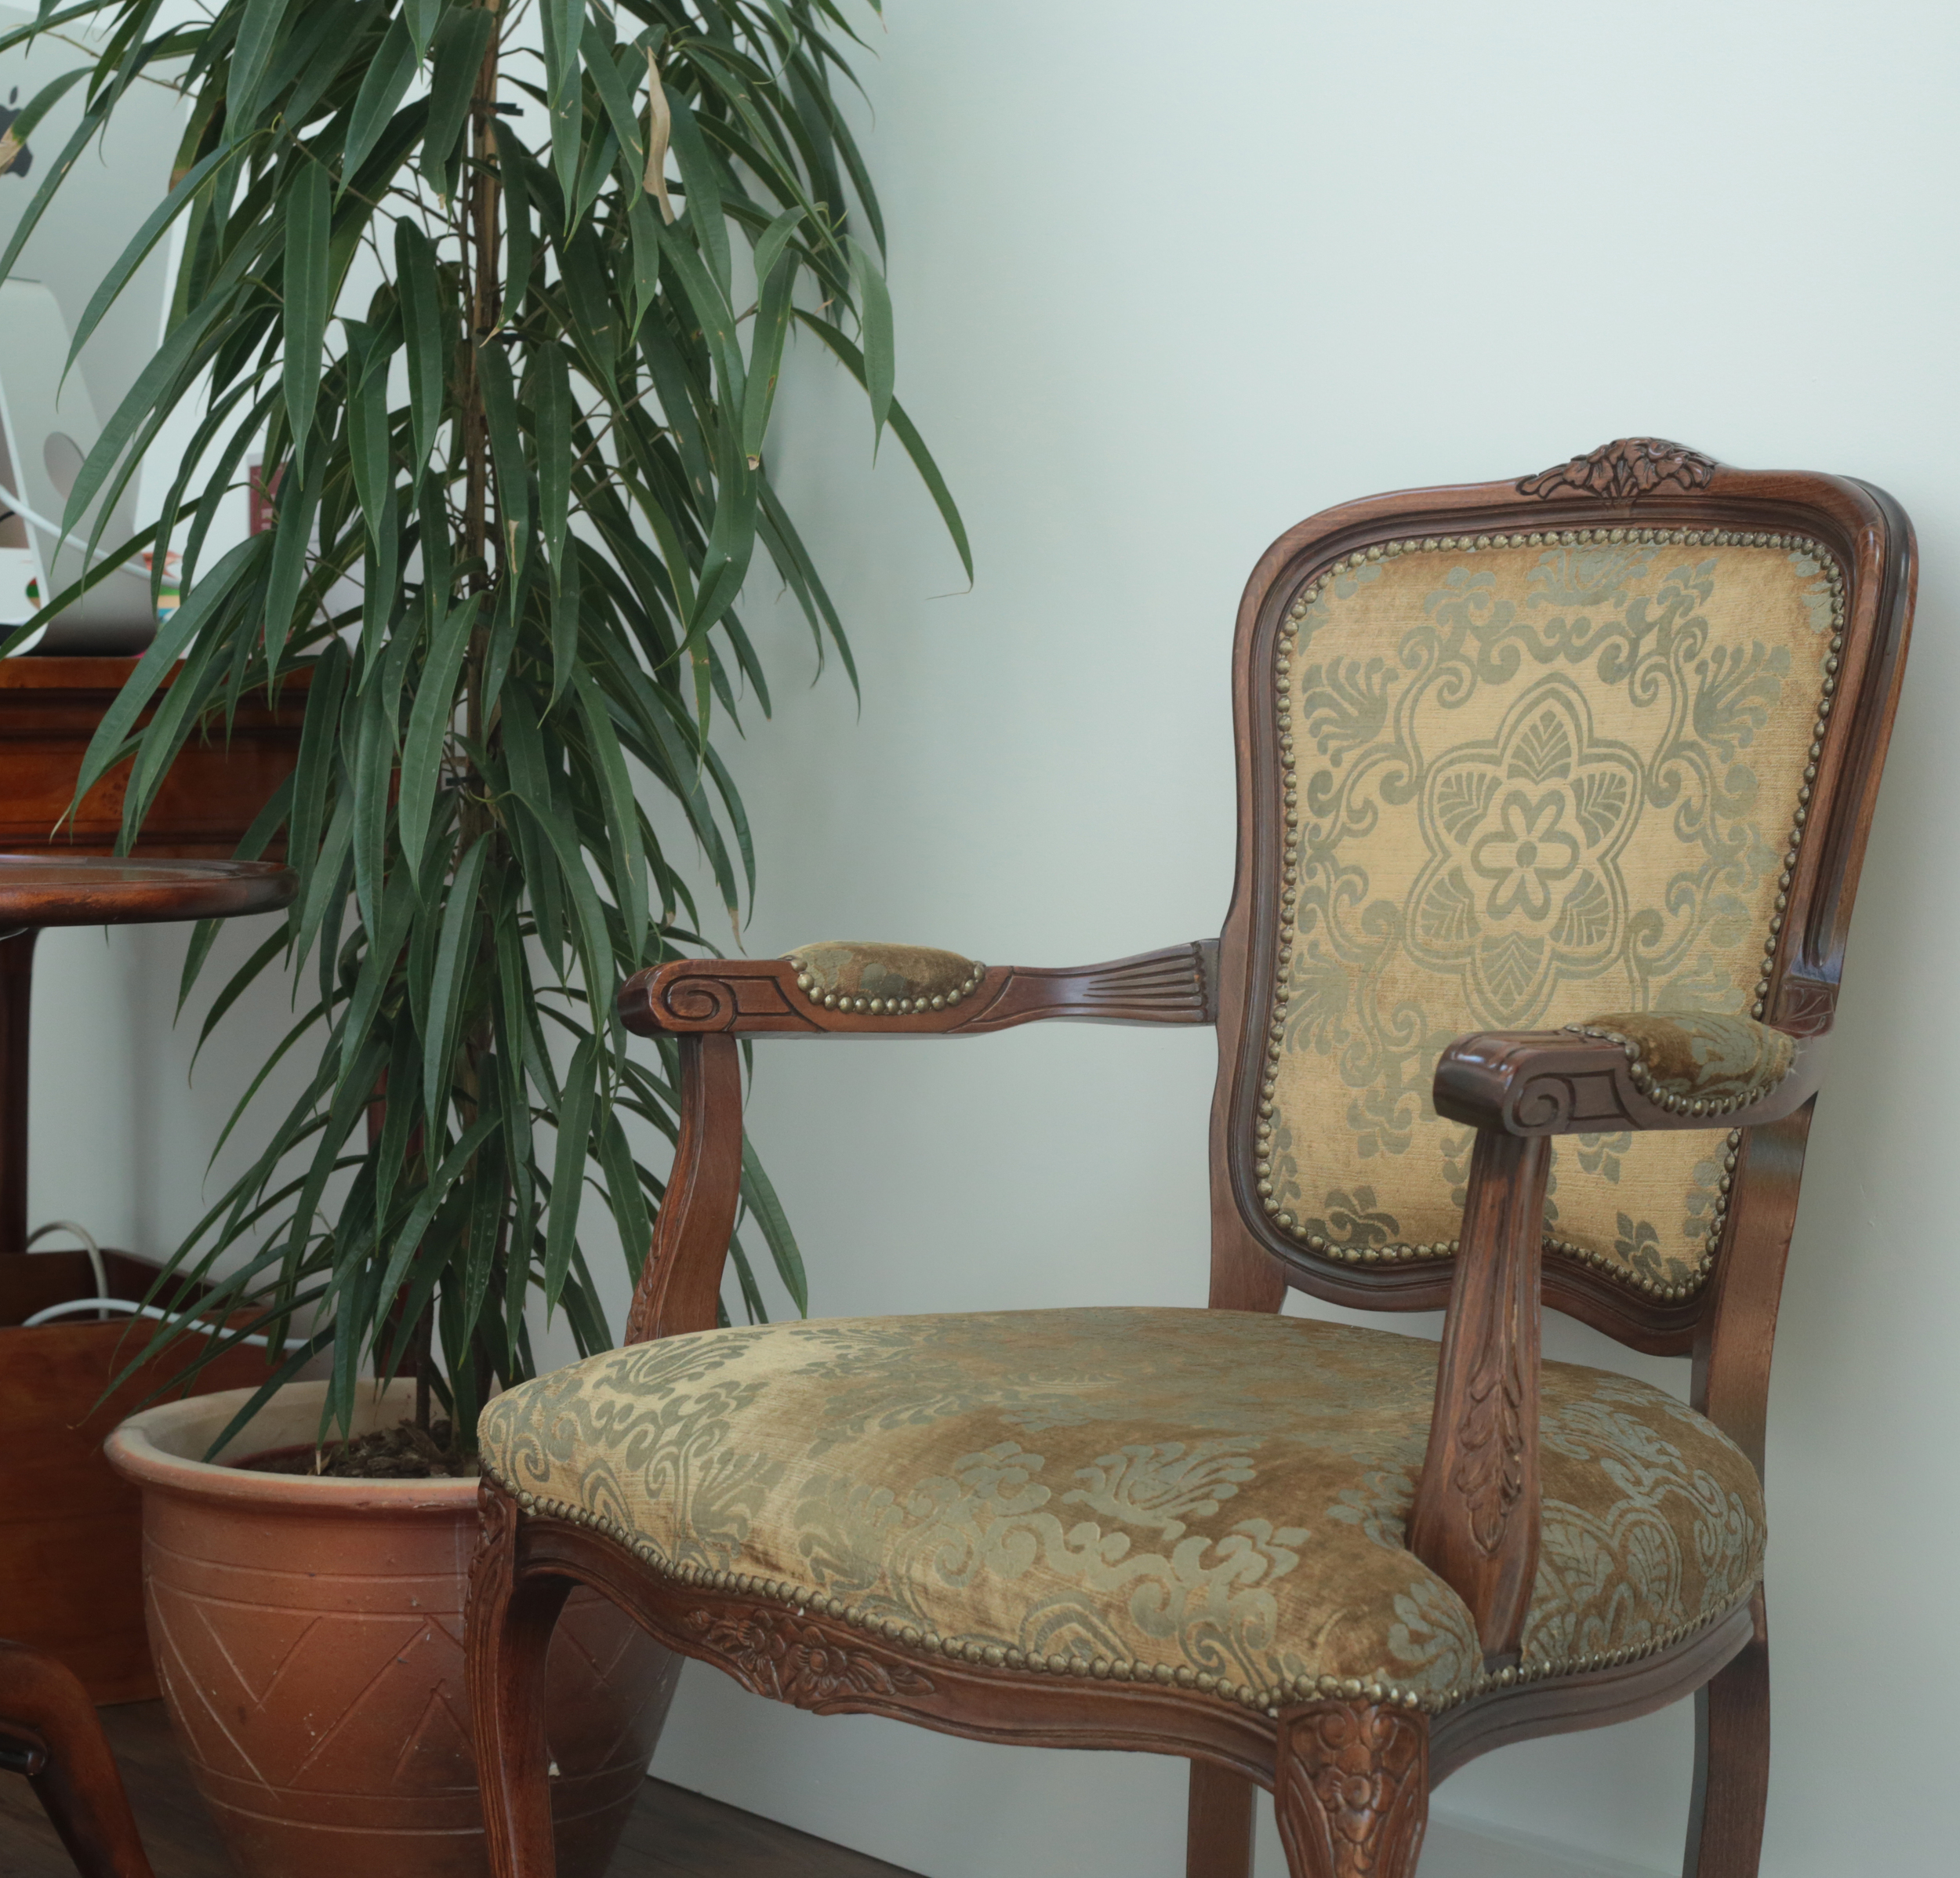 chair and plant.jpg